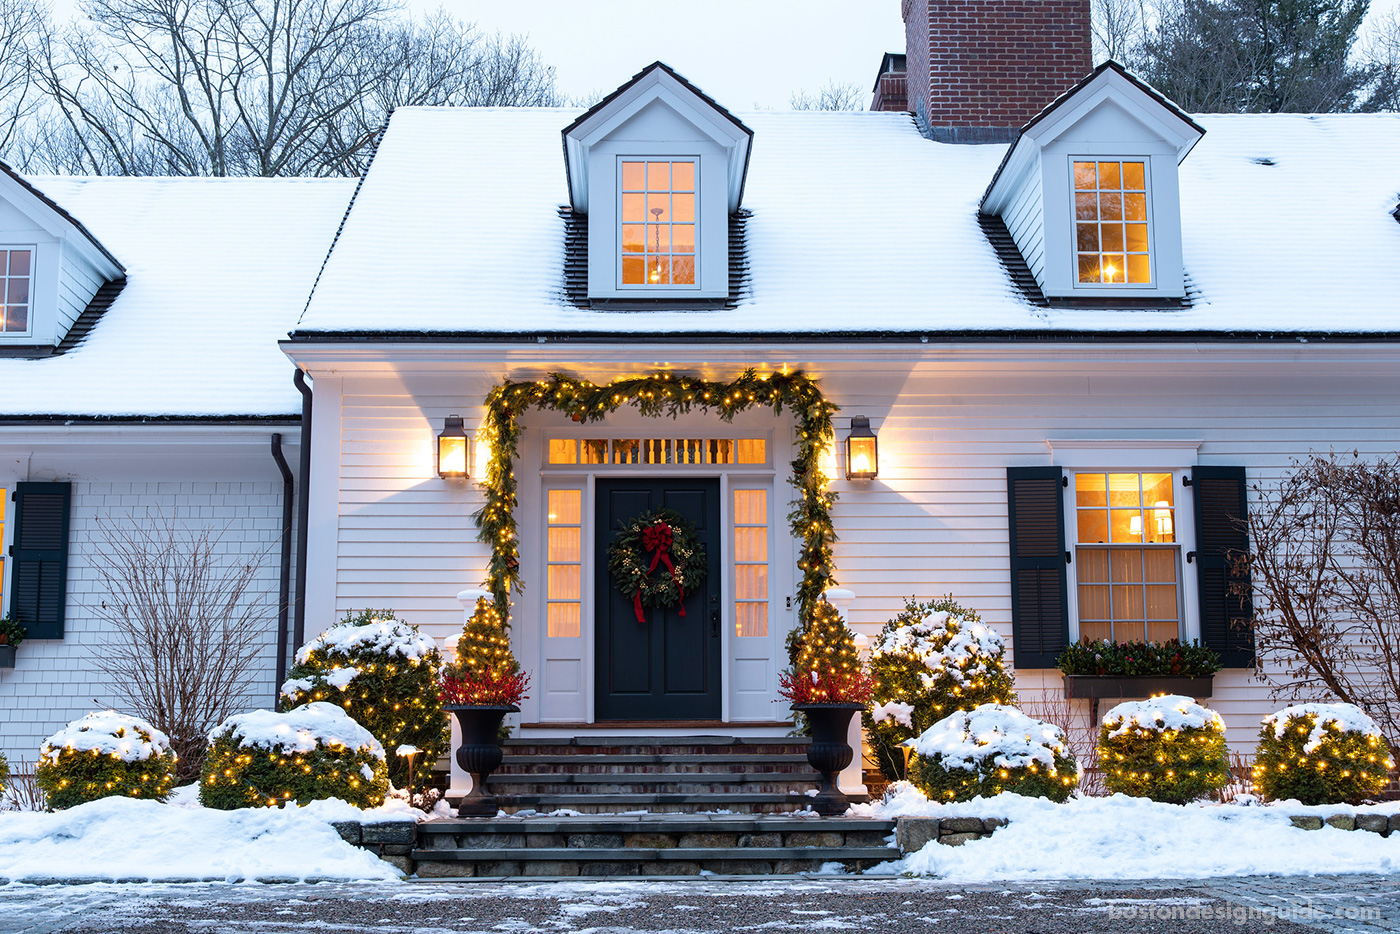 New England home dressed for the holidays by landscape design and installation firm a Blade of Grass